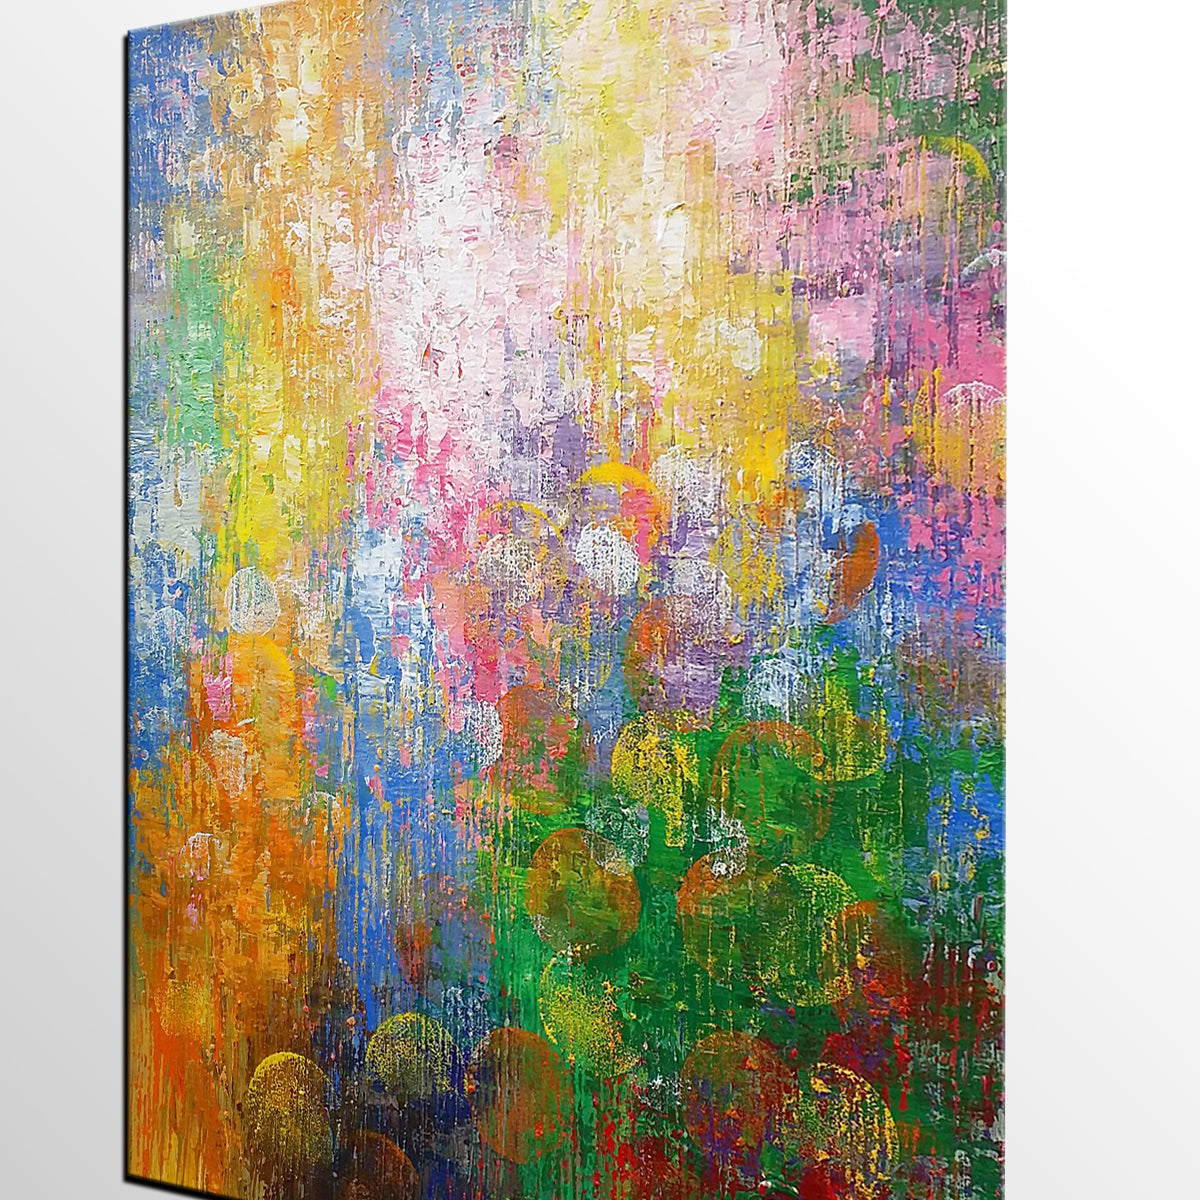 Original Wall Art, Abtract Painting, Large Art, Canvas Art, Wall Art, Original Artwork, Canvas Painting, Acrylic Painting 179